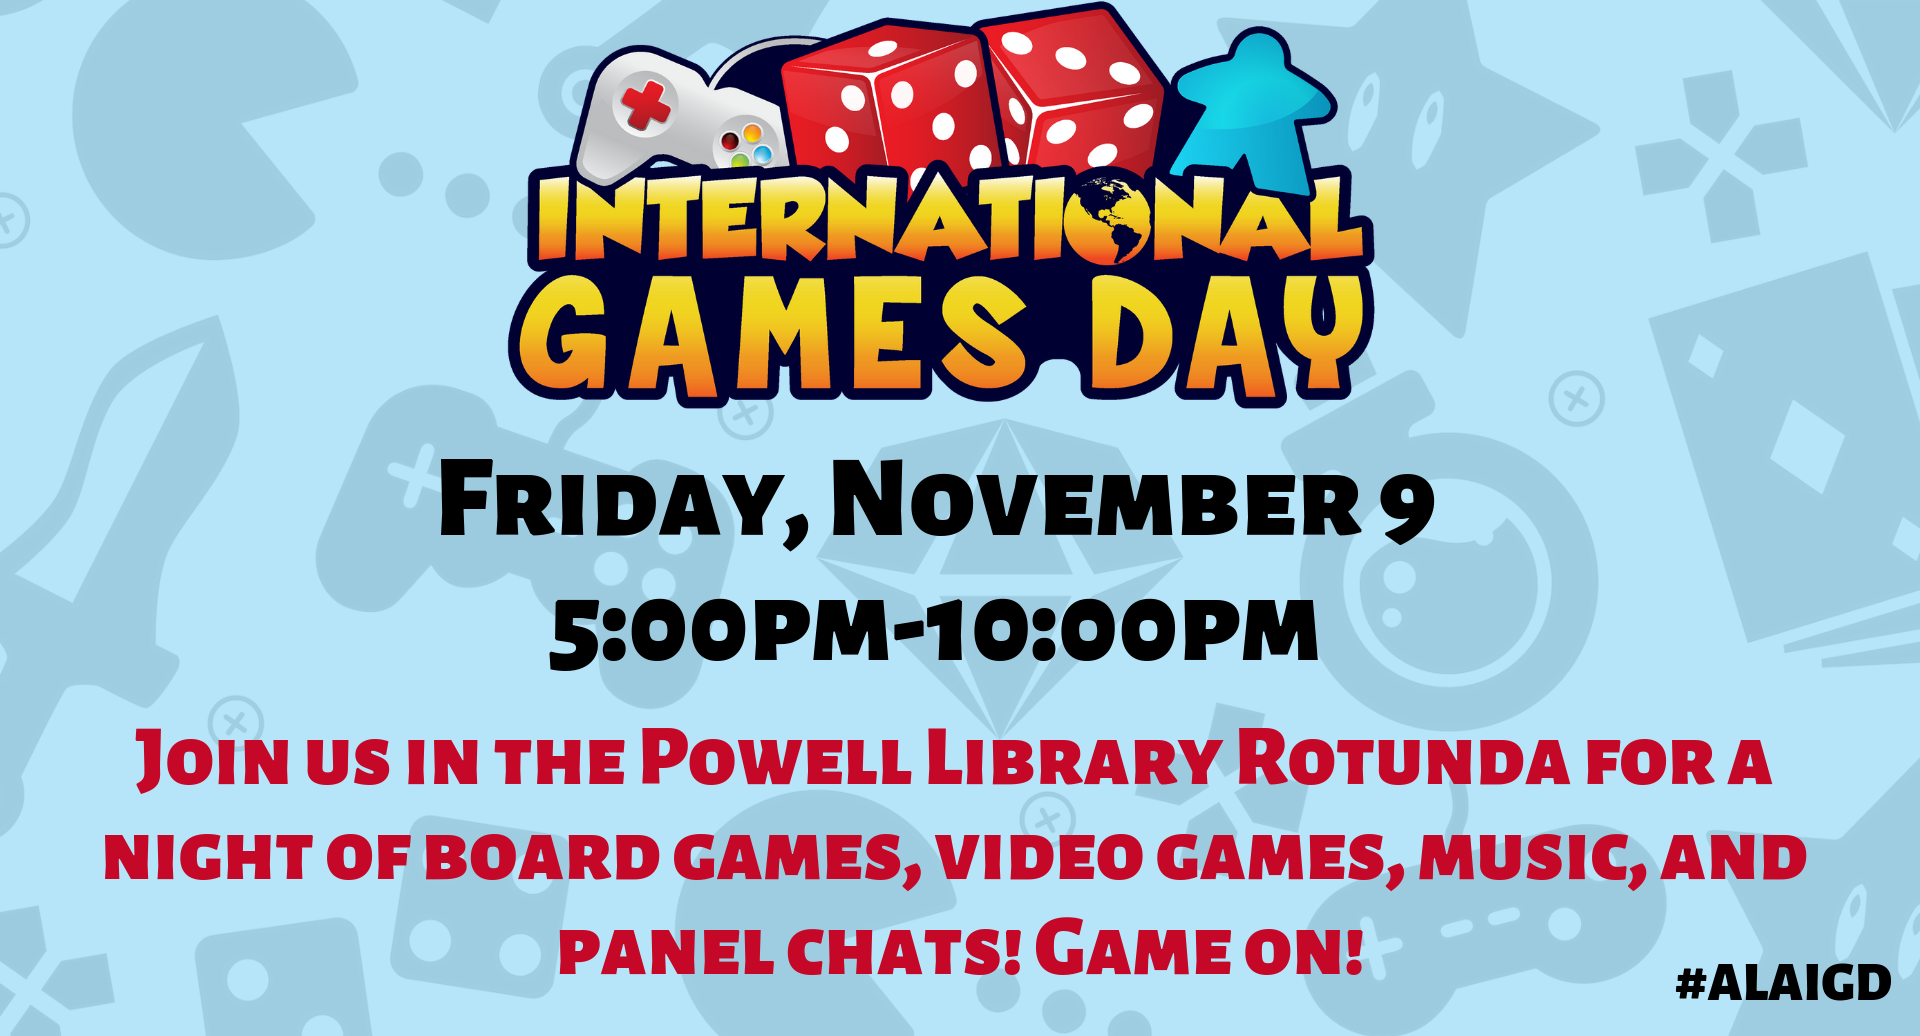 Marketing Flyer For International Games Day